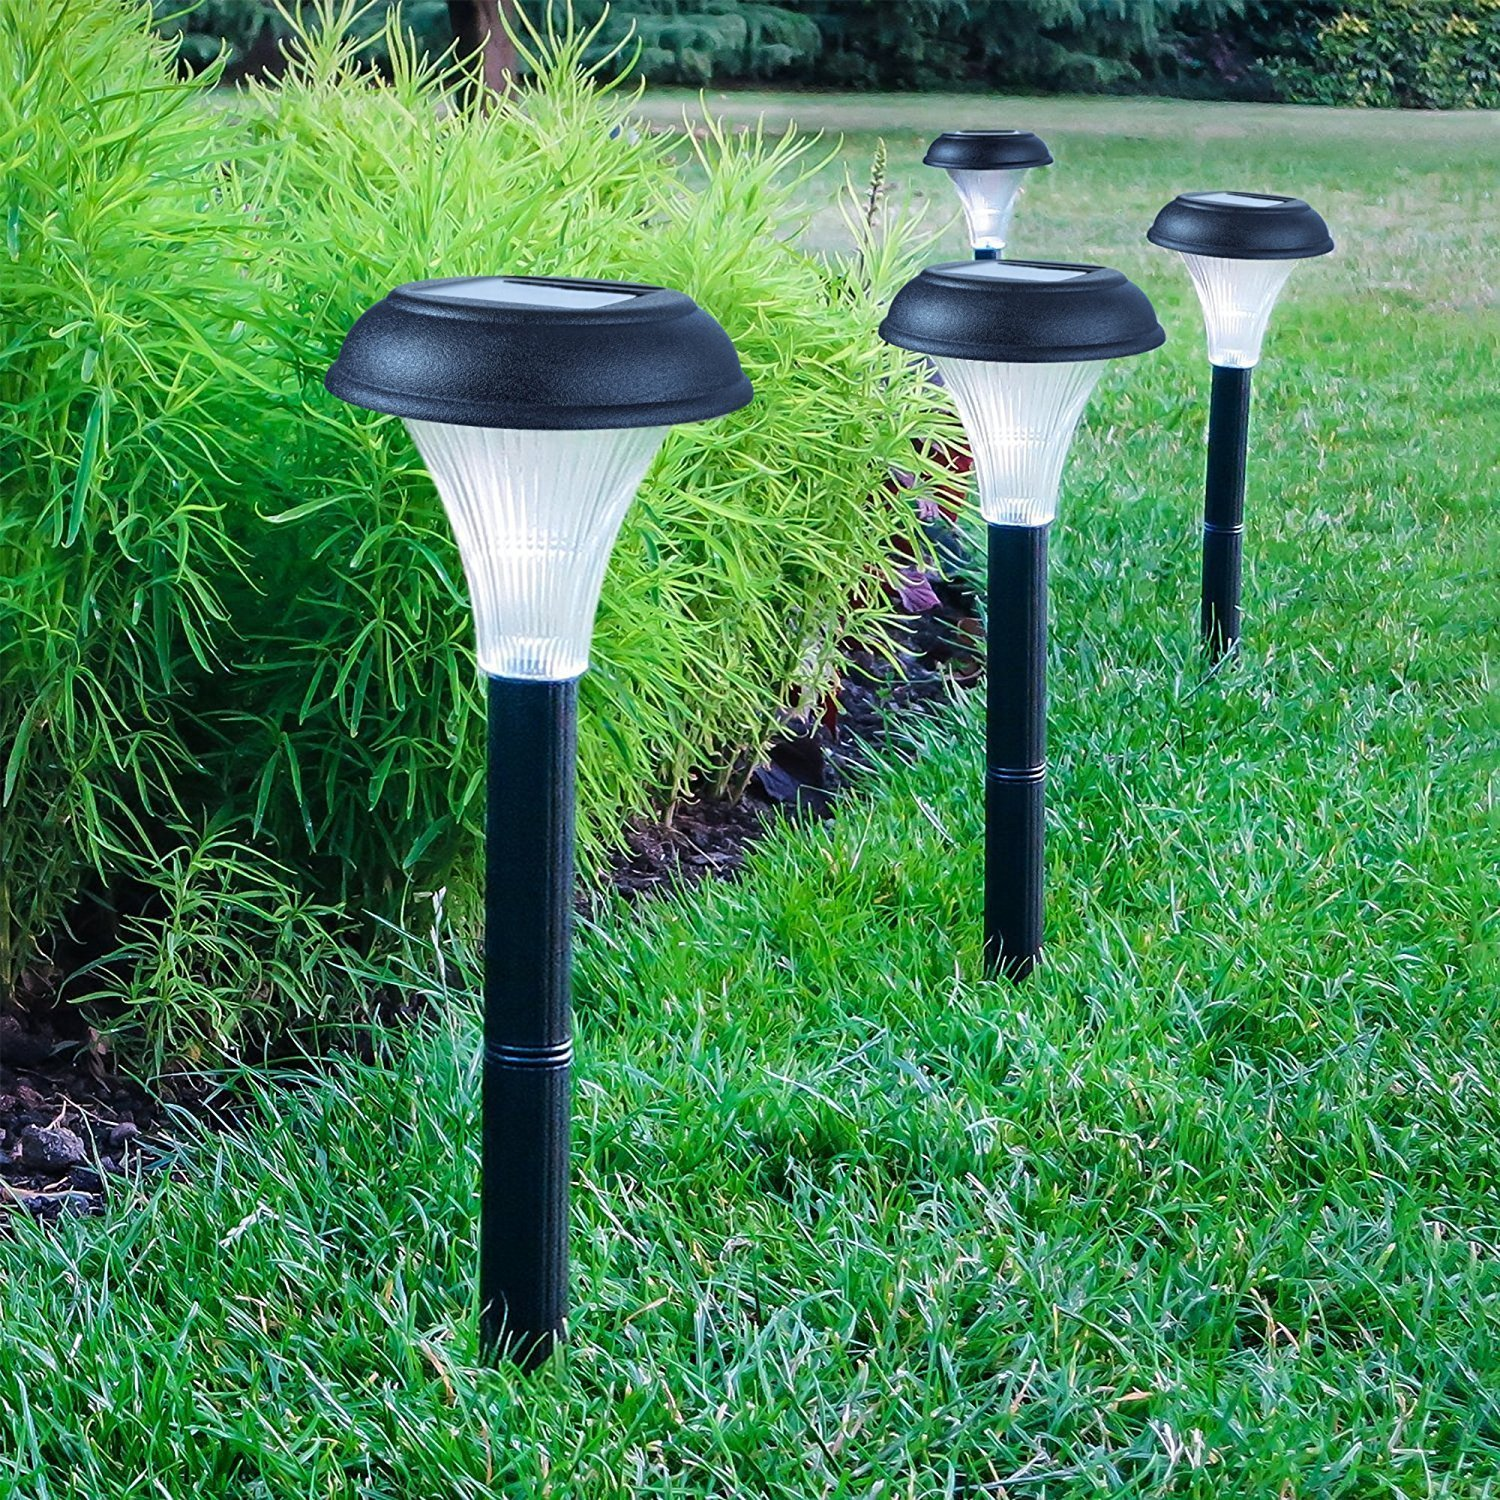 Outdoor Solar Garden Lights The 5 Best Solar Led Garden And Landscape Lights Reviewed